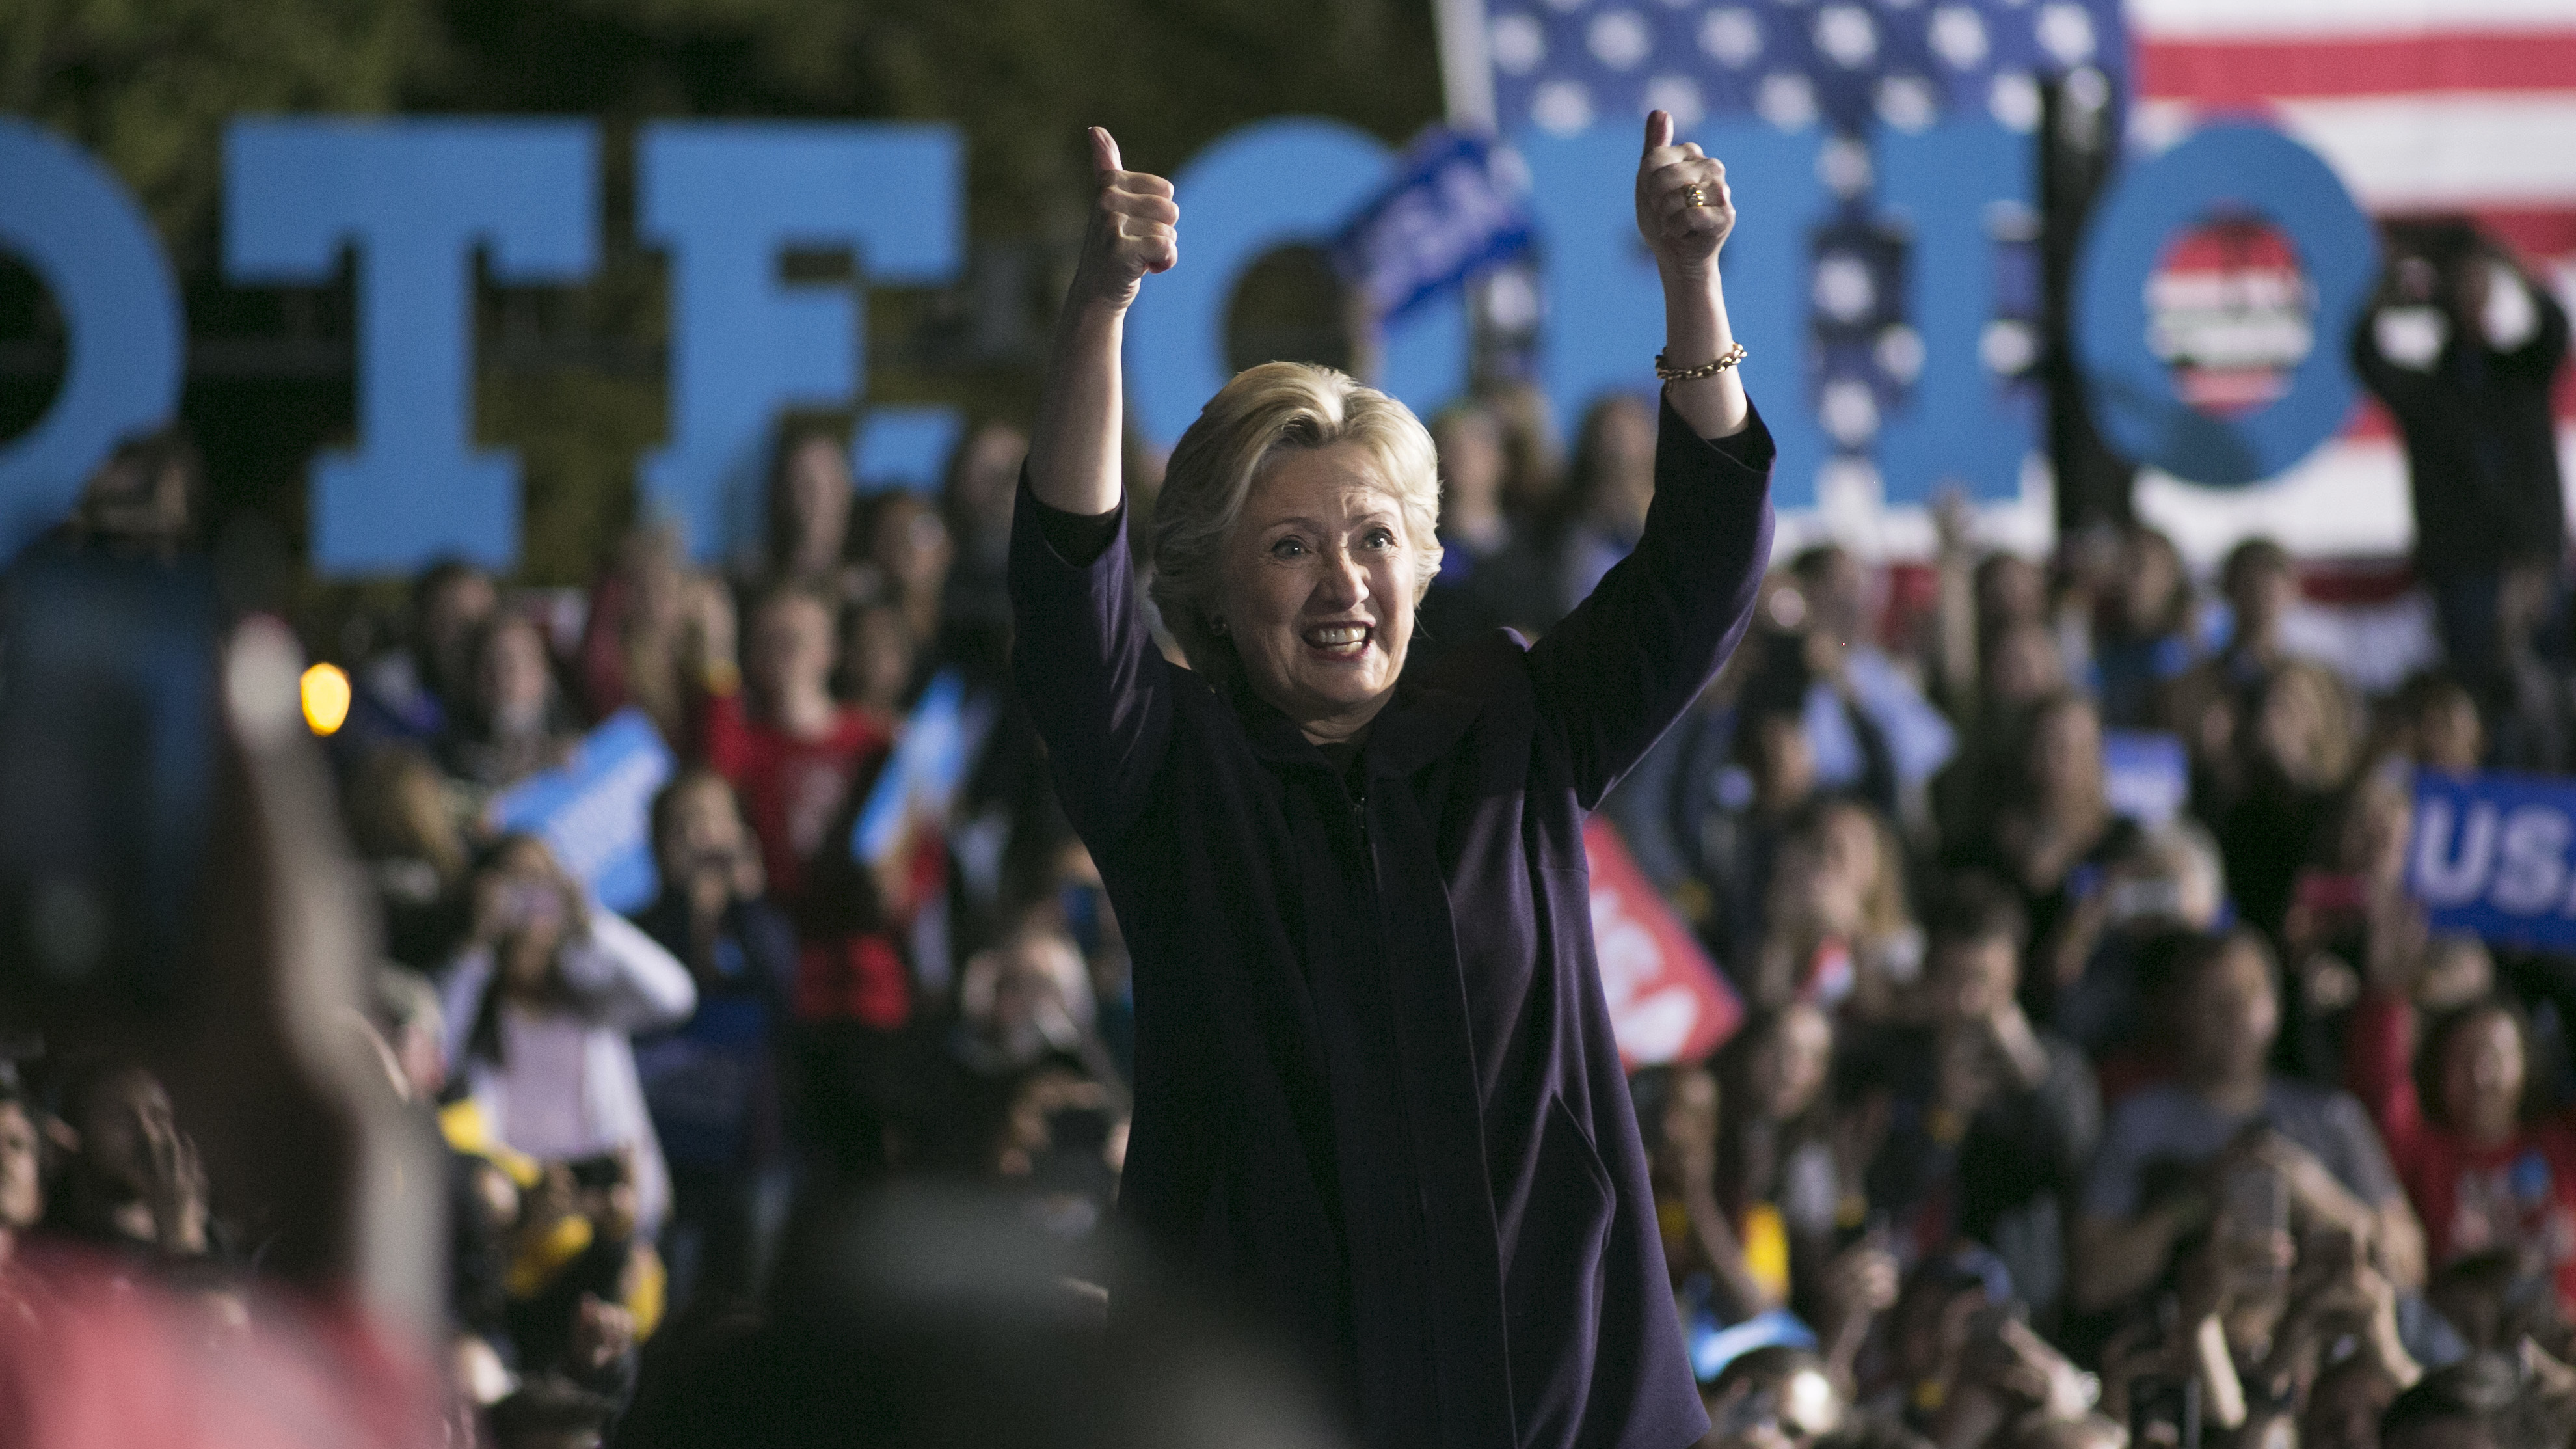 Hillary Clinton waves to the crowd after speaking at The Ohio State University on Monday. It was her largest crowd of the entire campaign.